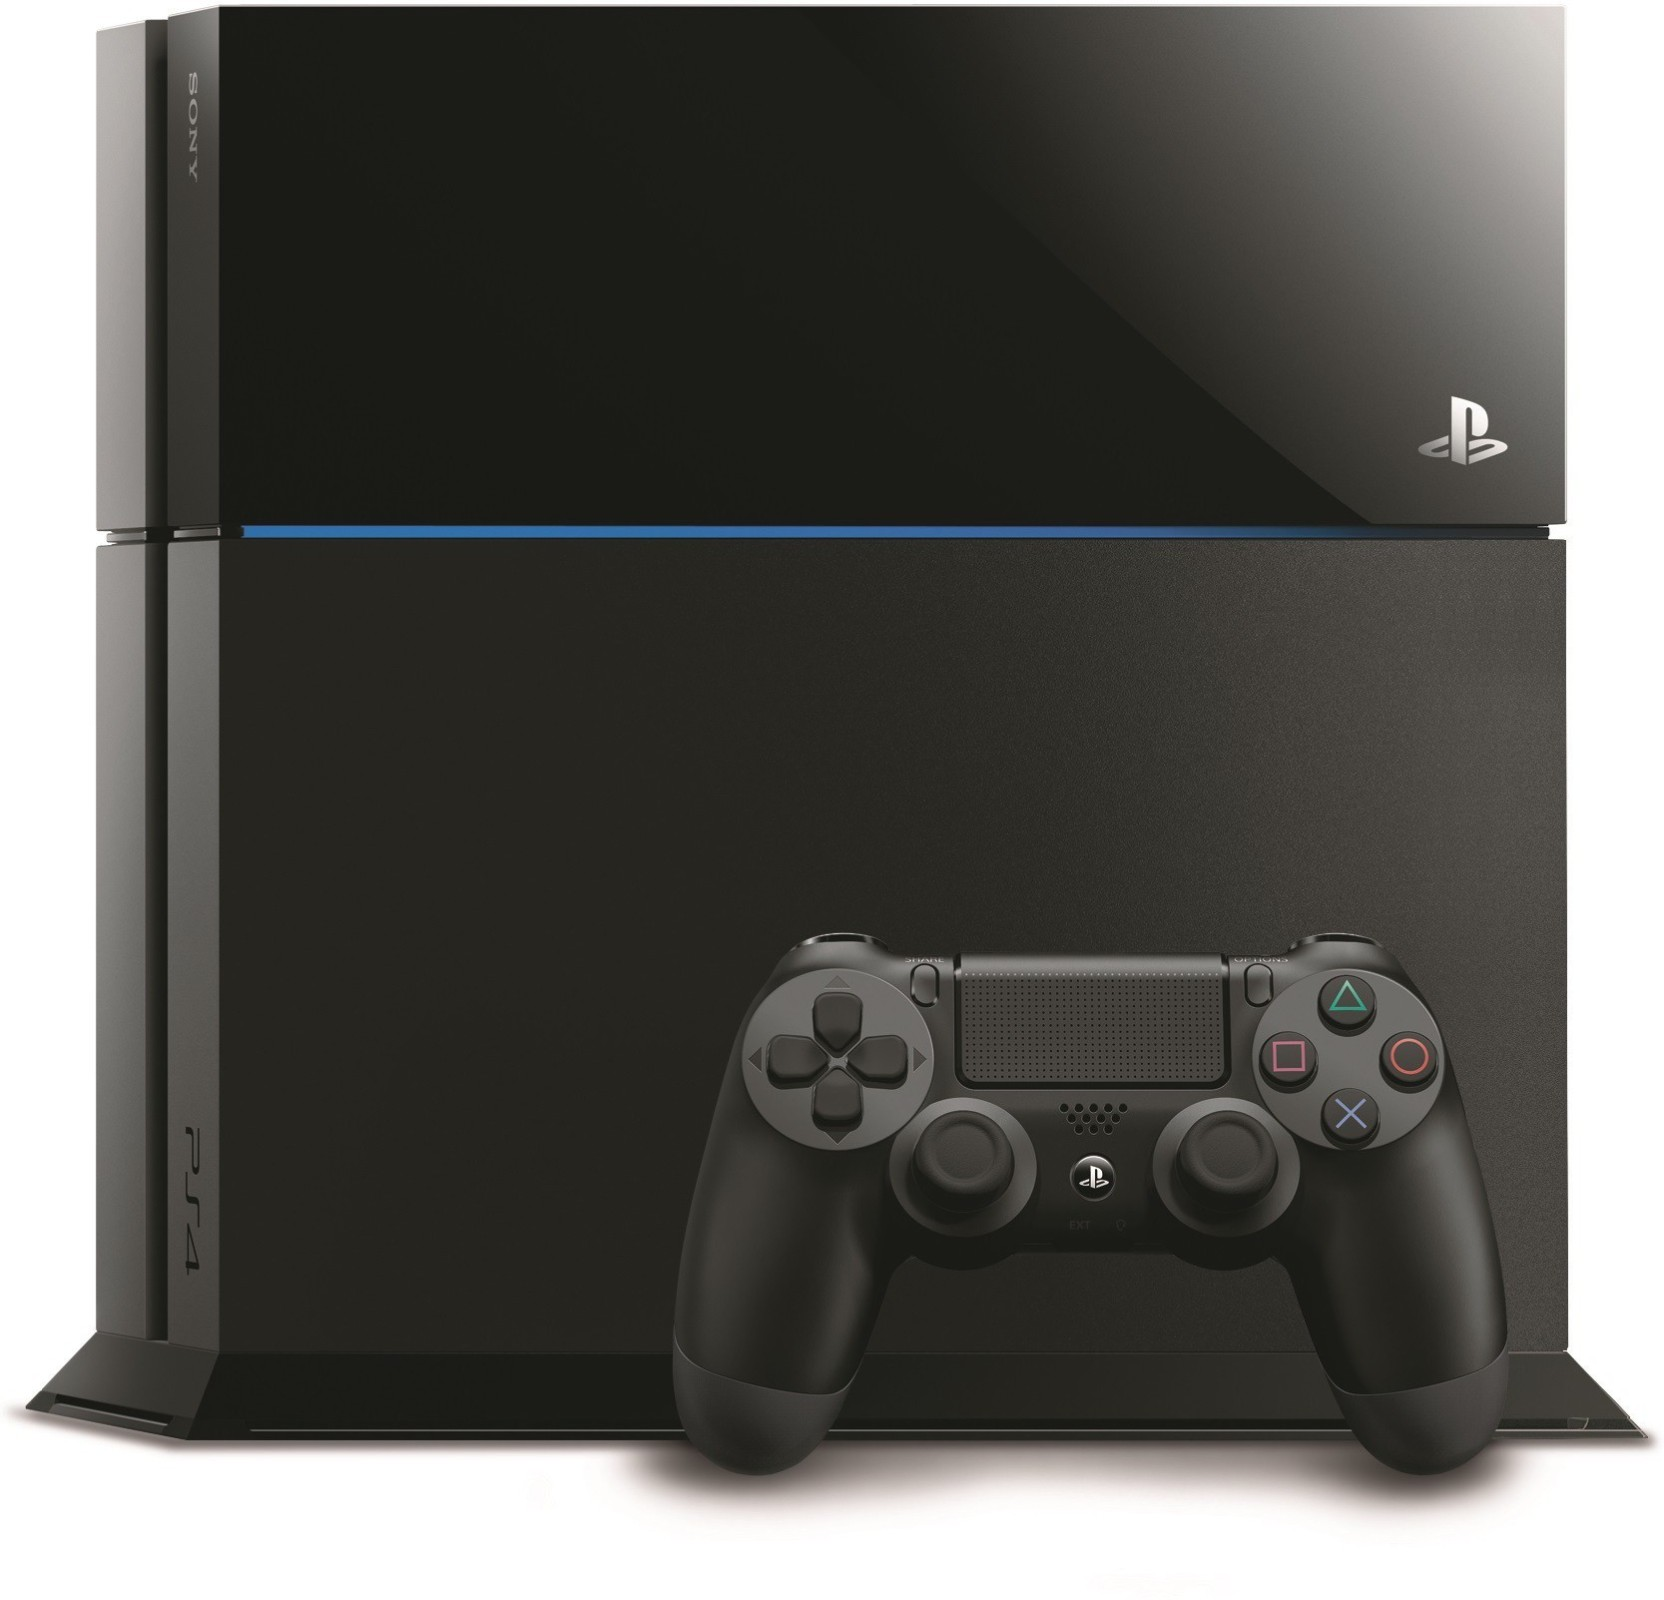 Sony Playstation 4 Ps4 1 Tb Price In India Buy 500gb Dvd Fifa 2015 Home